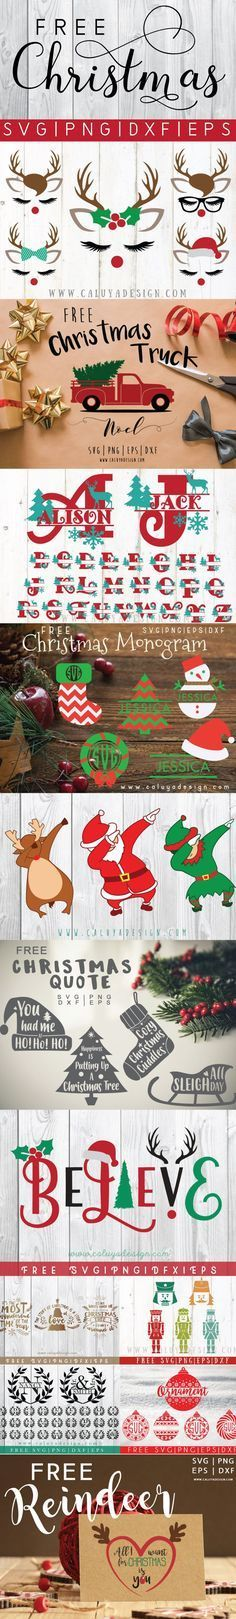 FREE 12 Christmas cut files Bundles. FREE christmas SVG, PNG, EPS & DXF cut files. Compatible with Cricut, Cameo silhouette and other major cut machines.